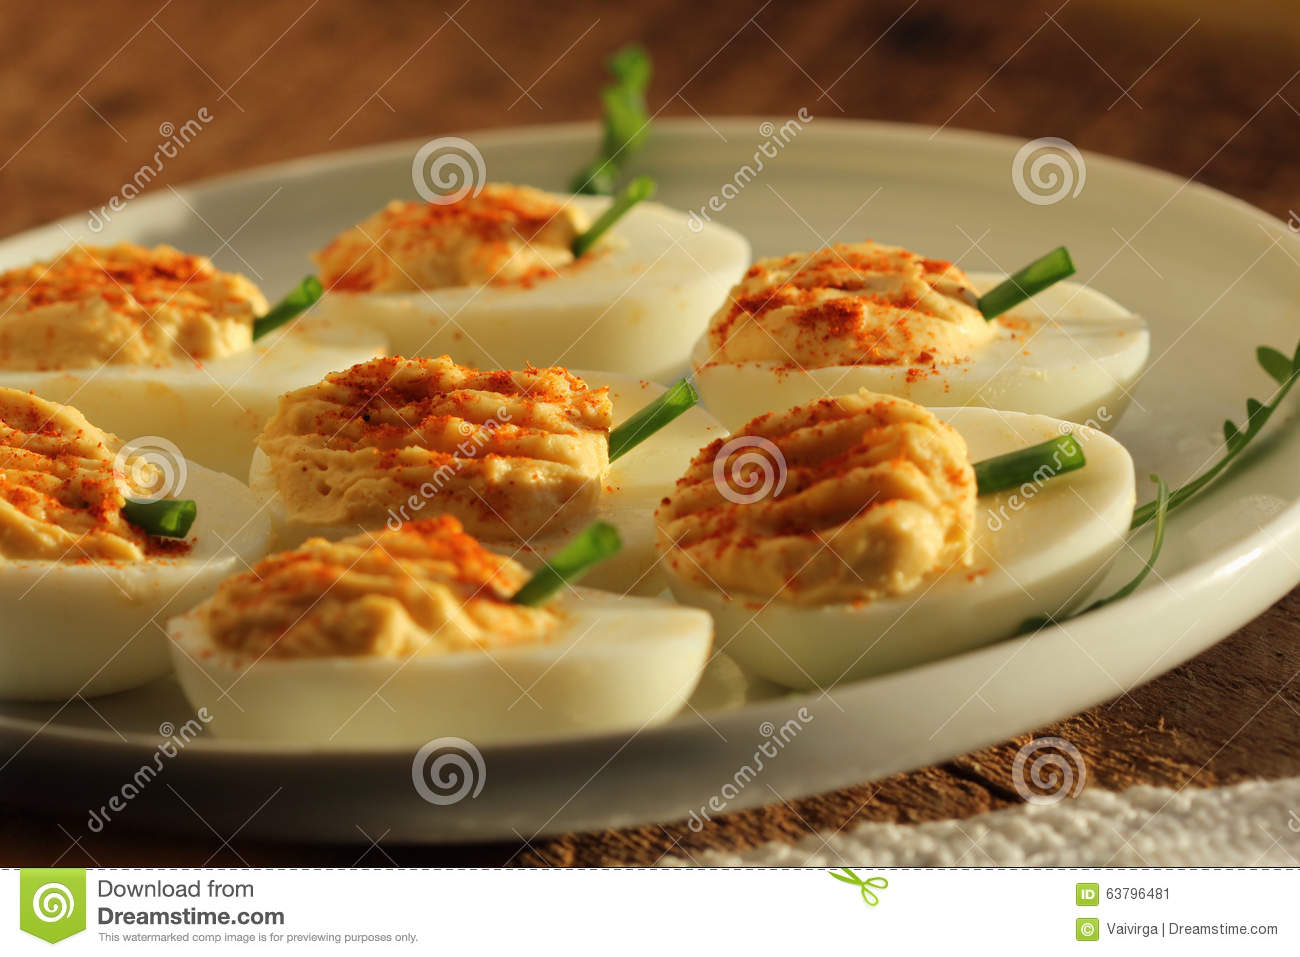 Deviled Eggs With Red Pepper Stock Photo - Image: 63796481